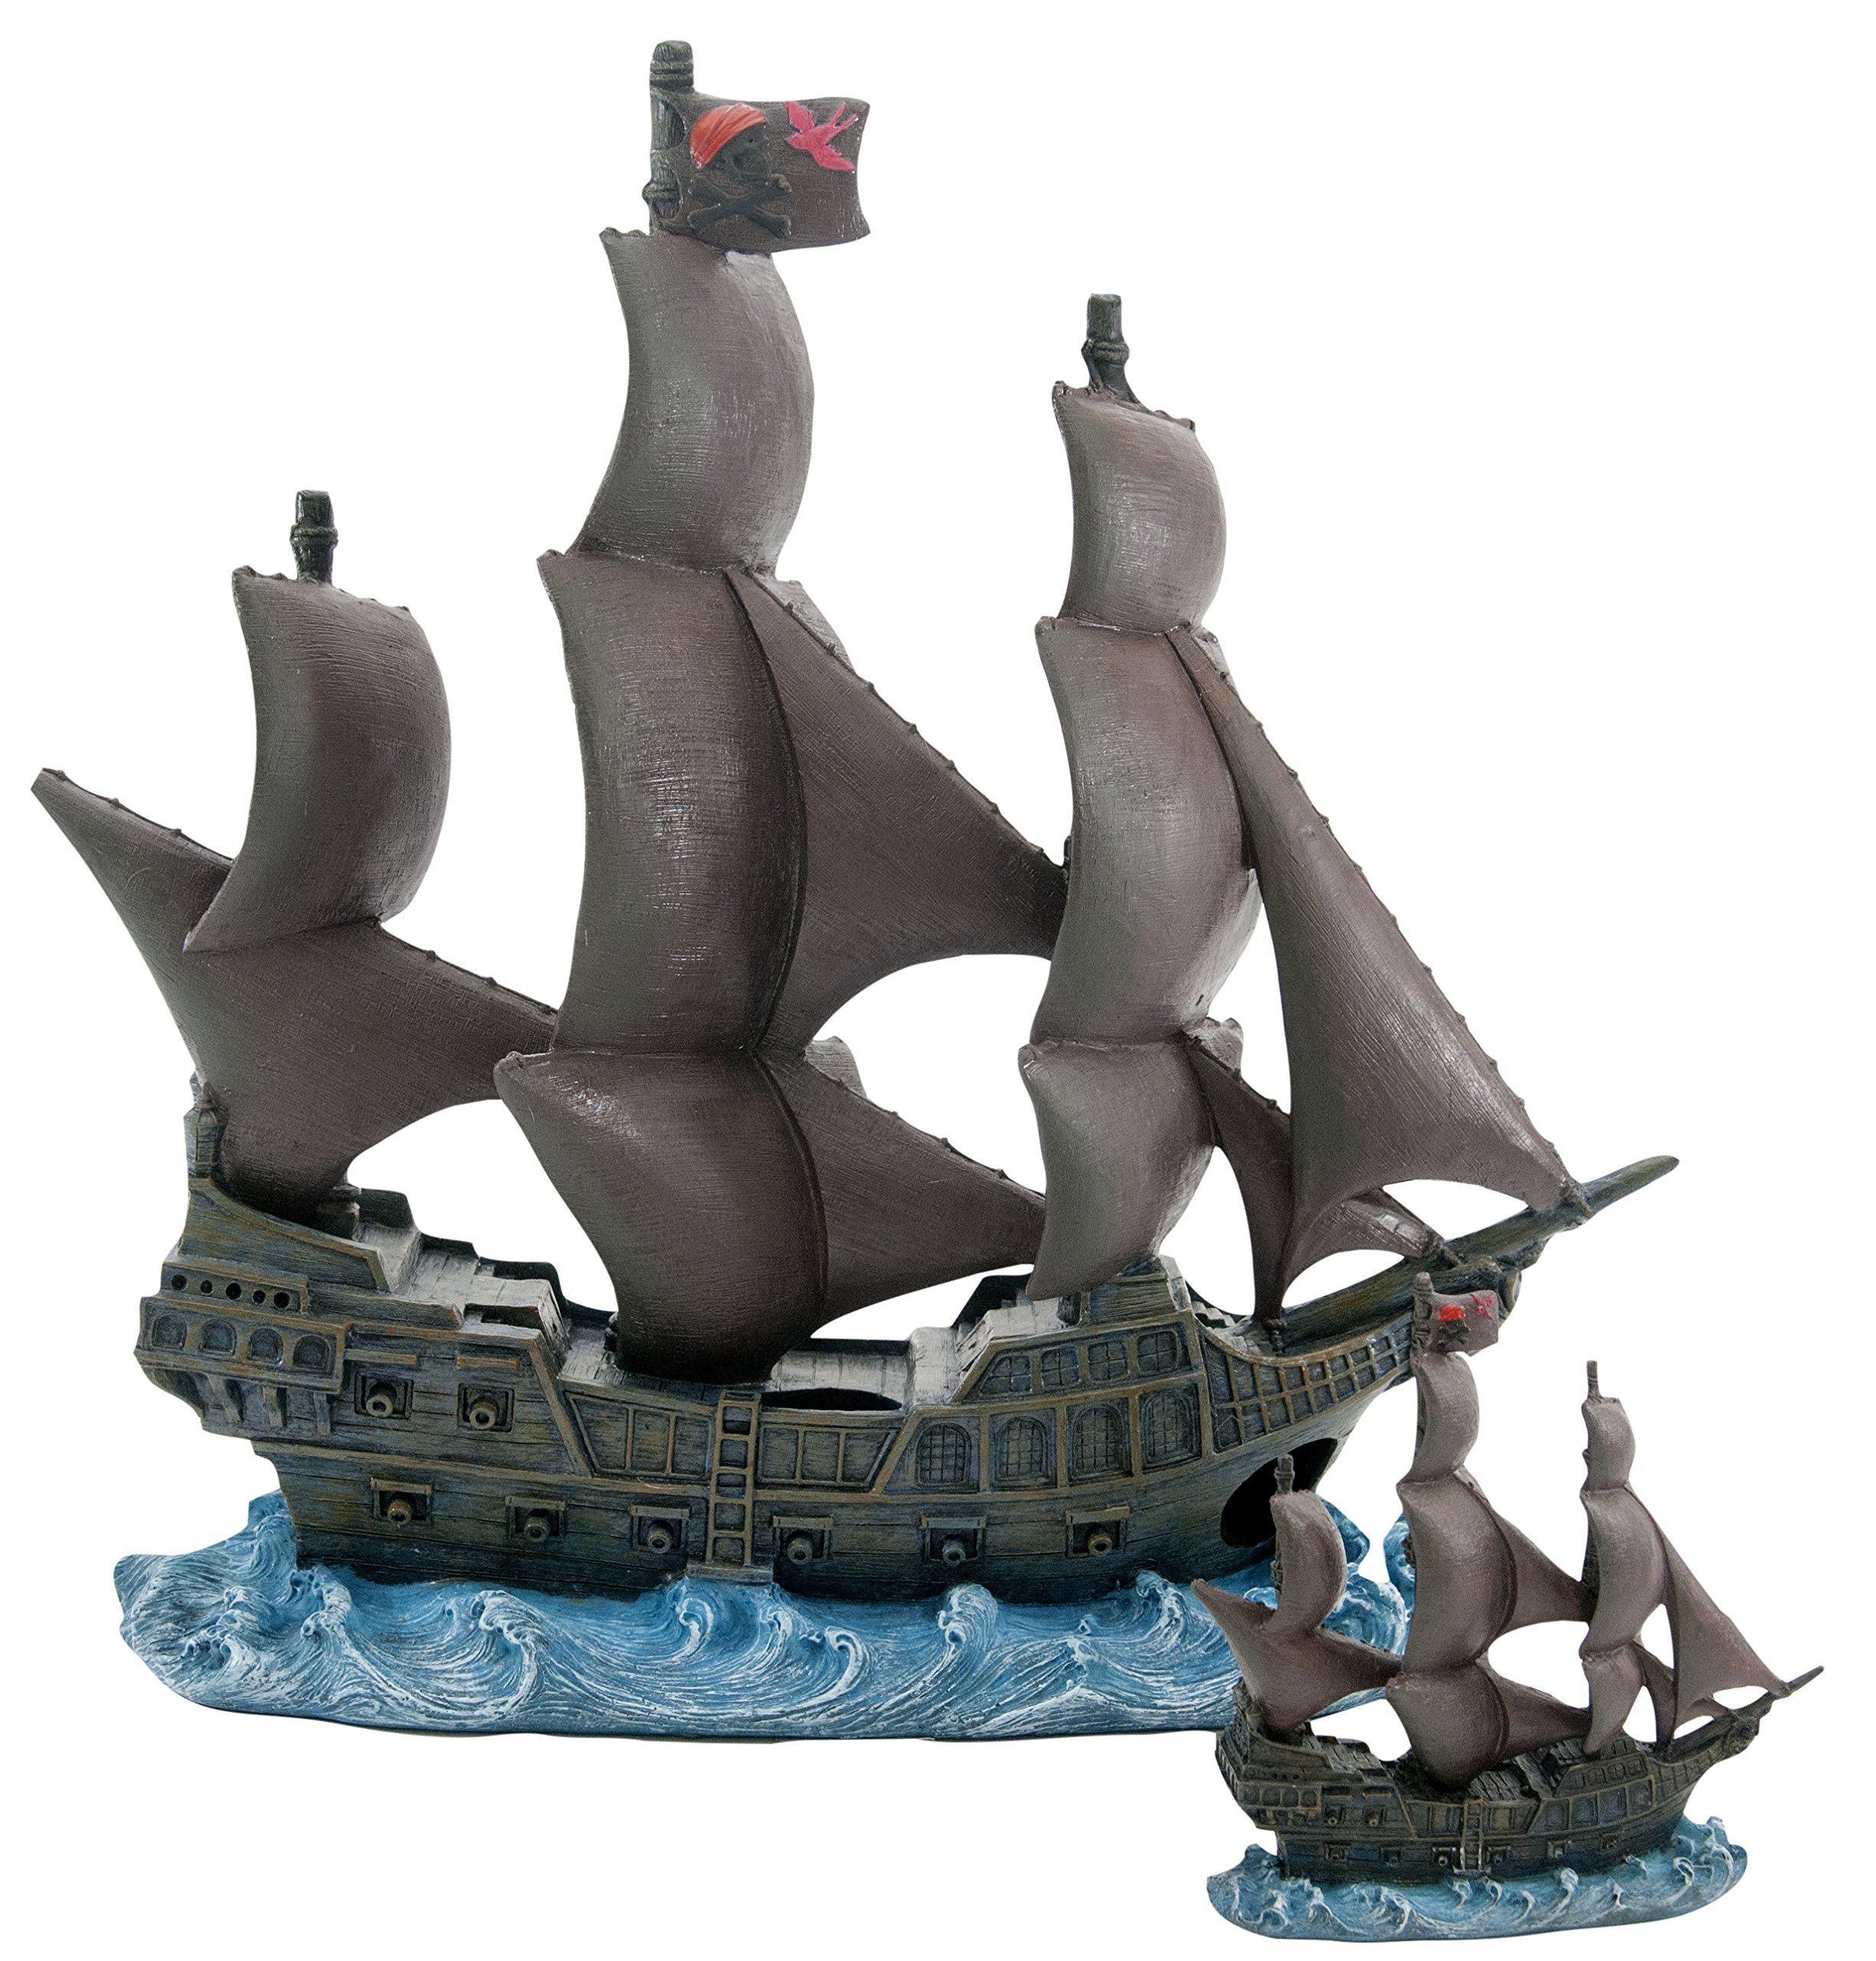 Officially Licensed Disney Aquarium Ornaments from Pirates of The Caribbean (11.75'' Black Pearl) by Penn Plax